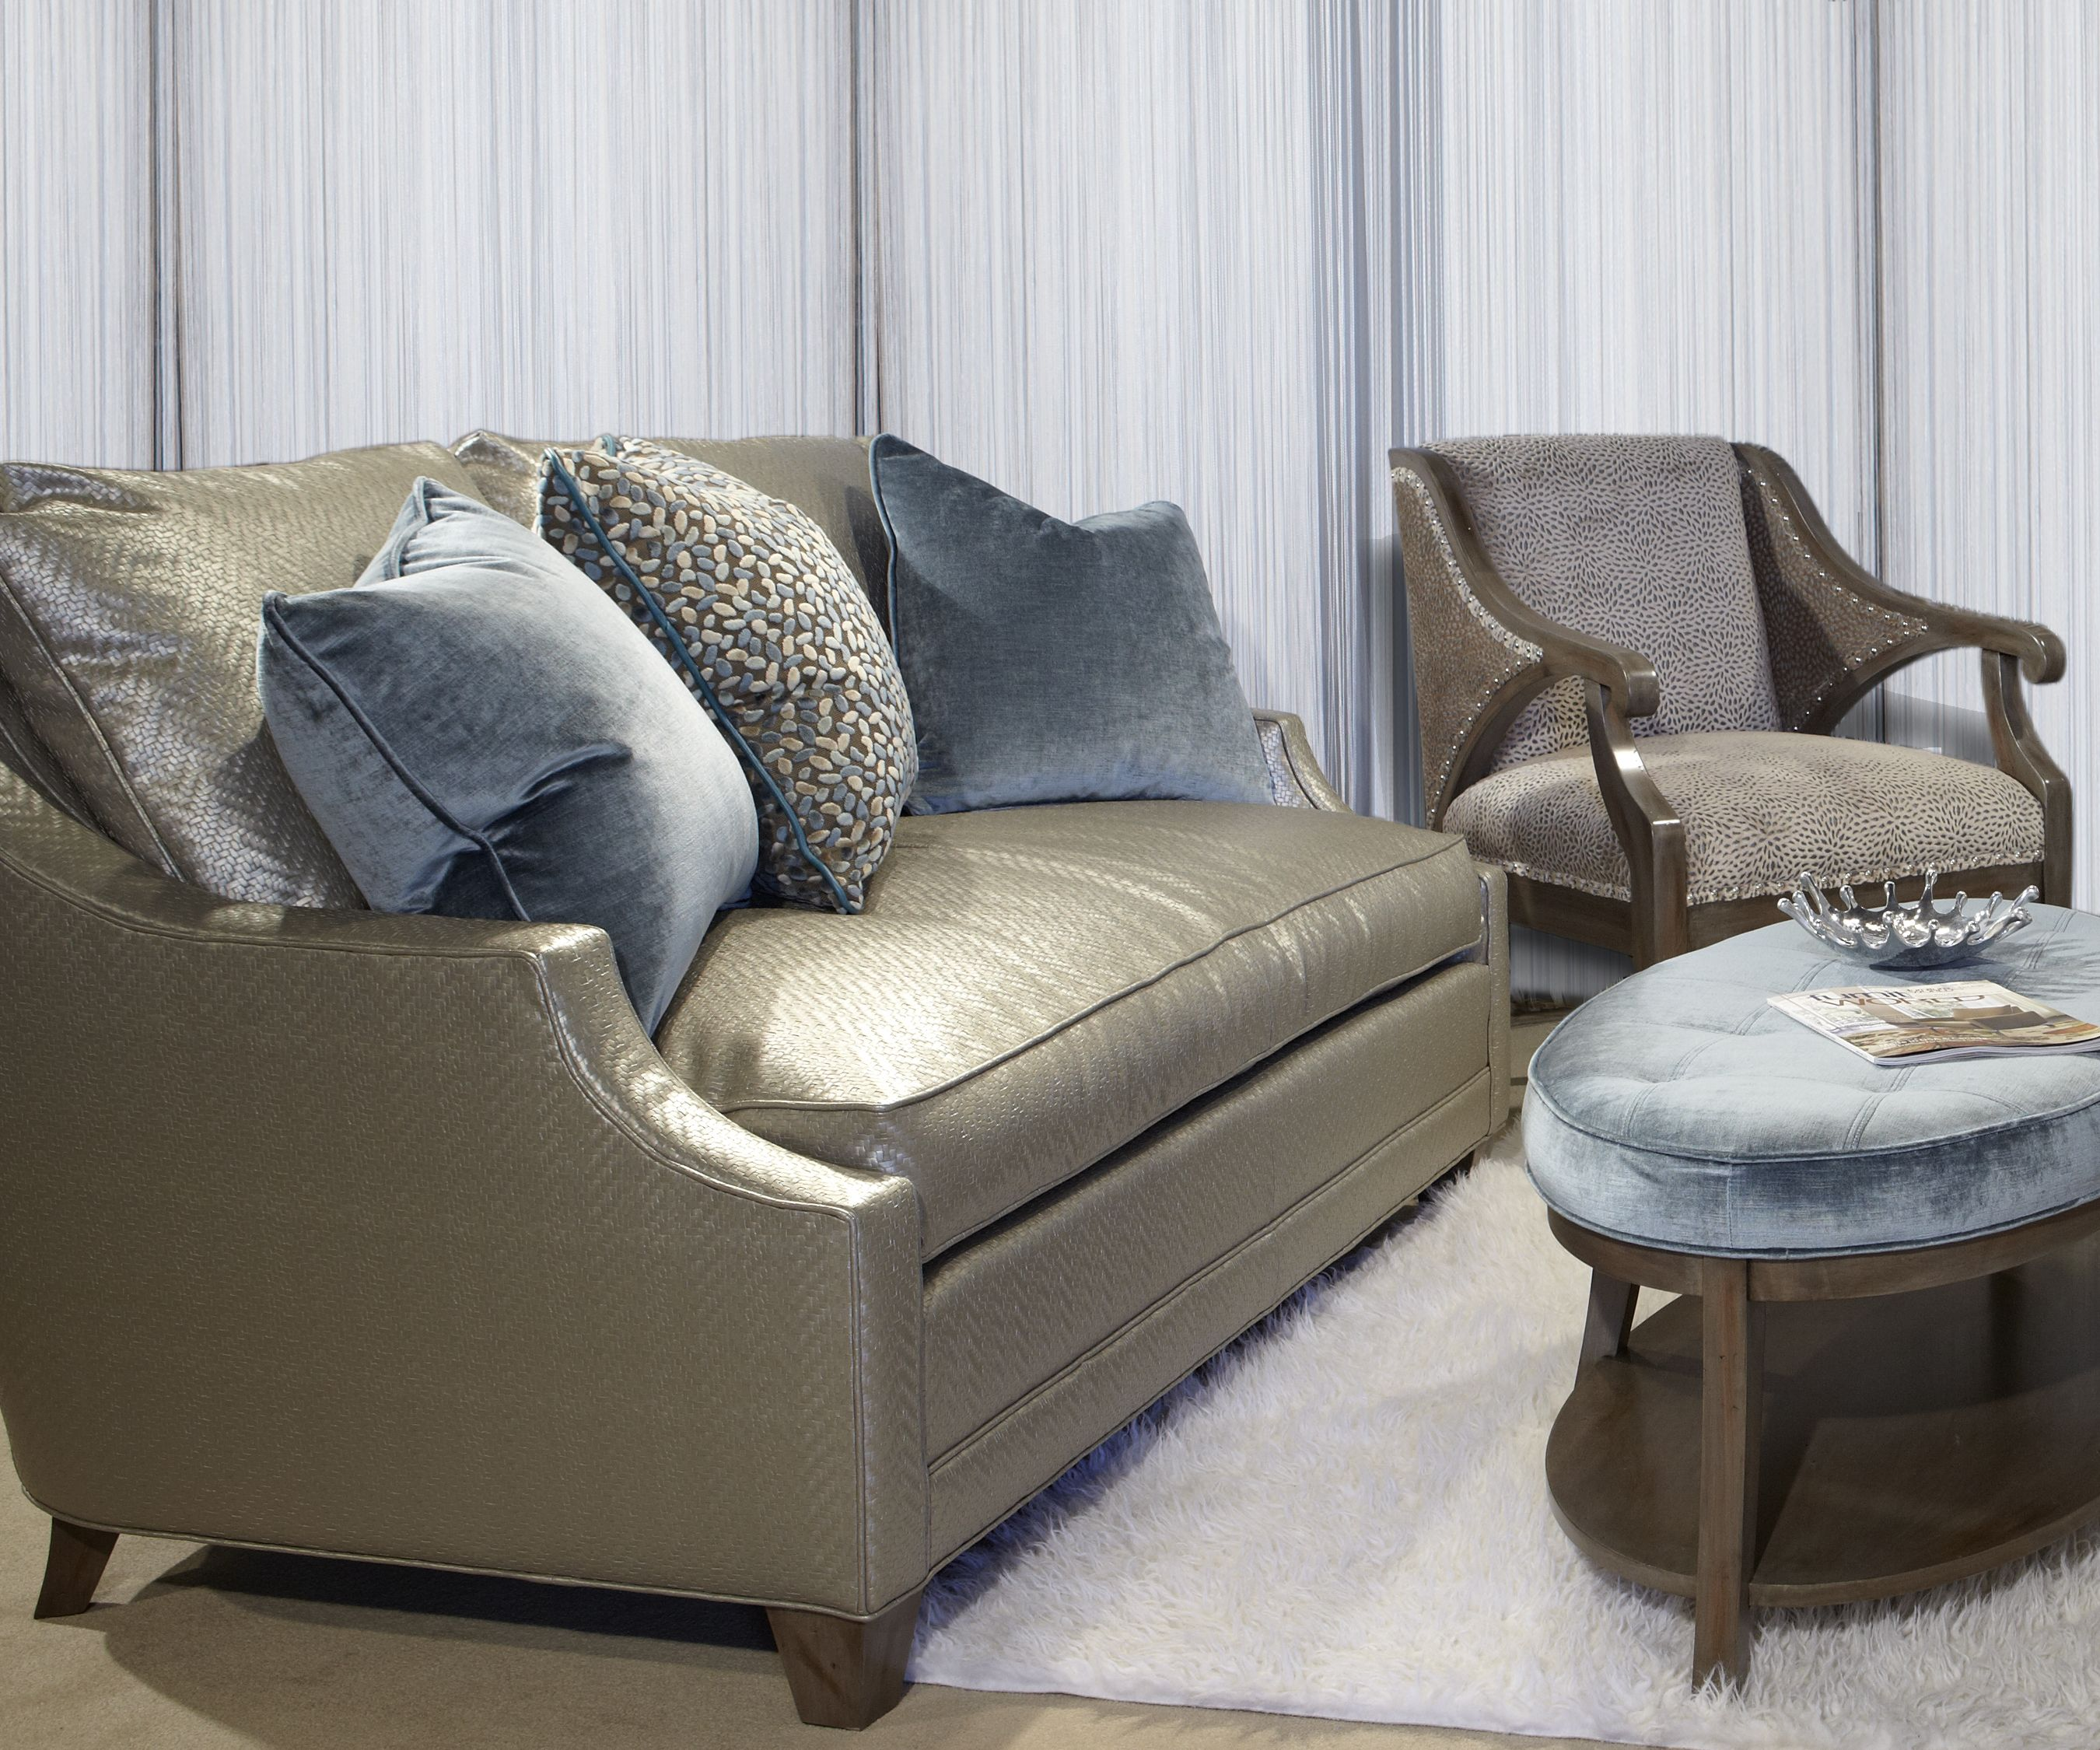 rene and camden by norwalk furniture past trends pinterest rh pinterest com norwalk sofa and chair austin norwalk sofa and chair company